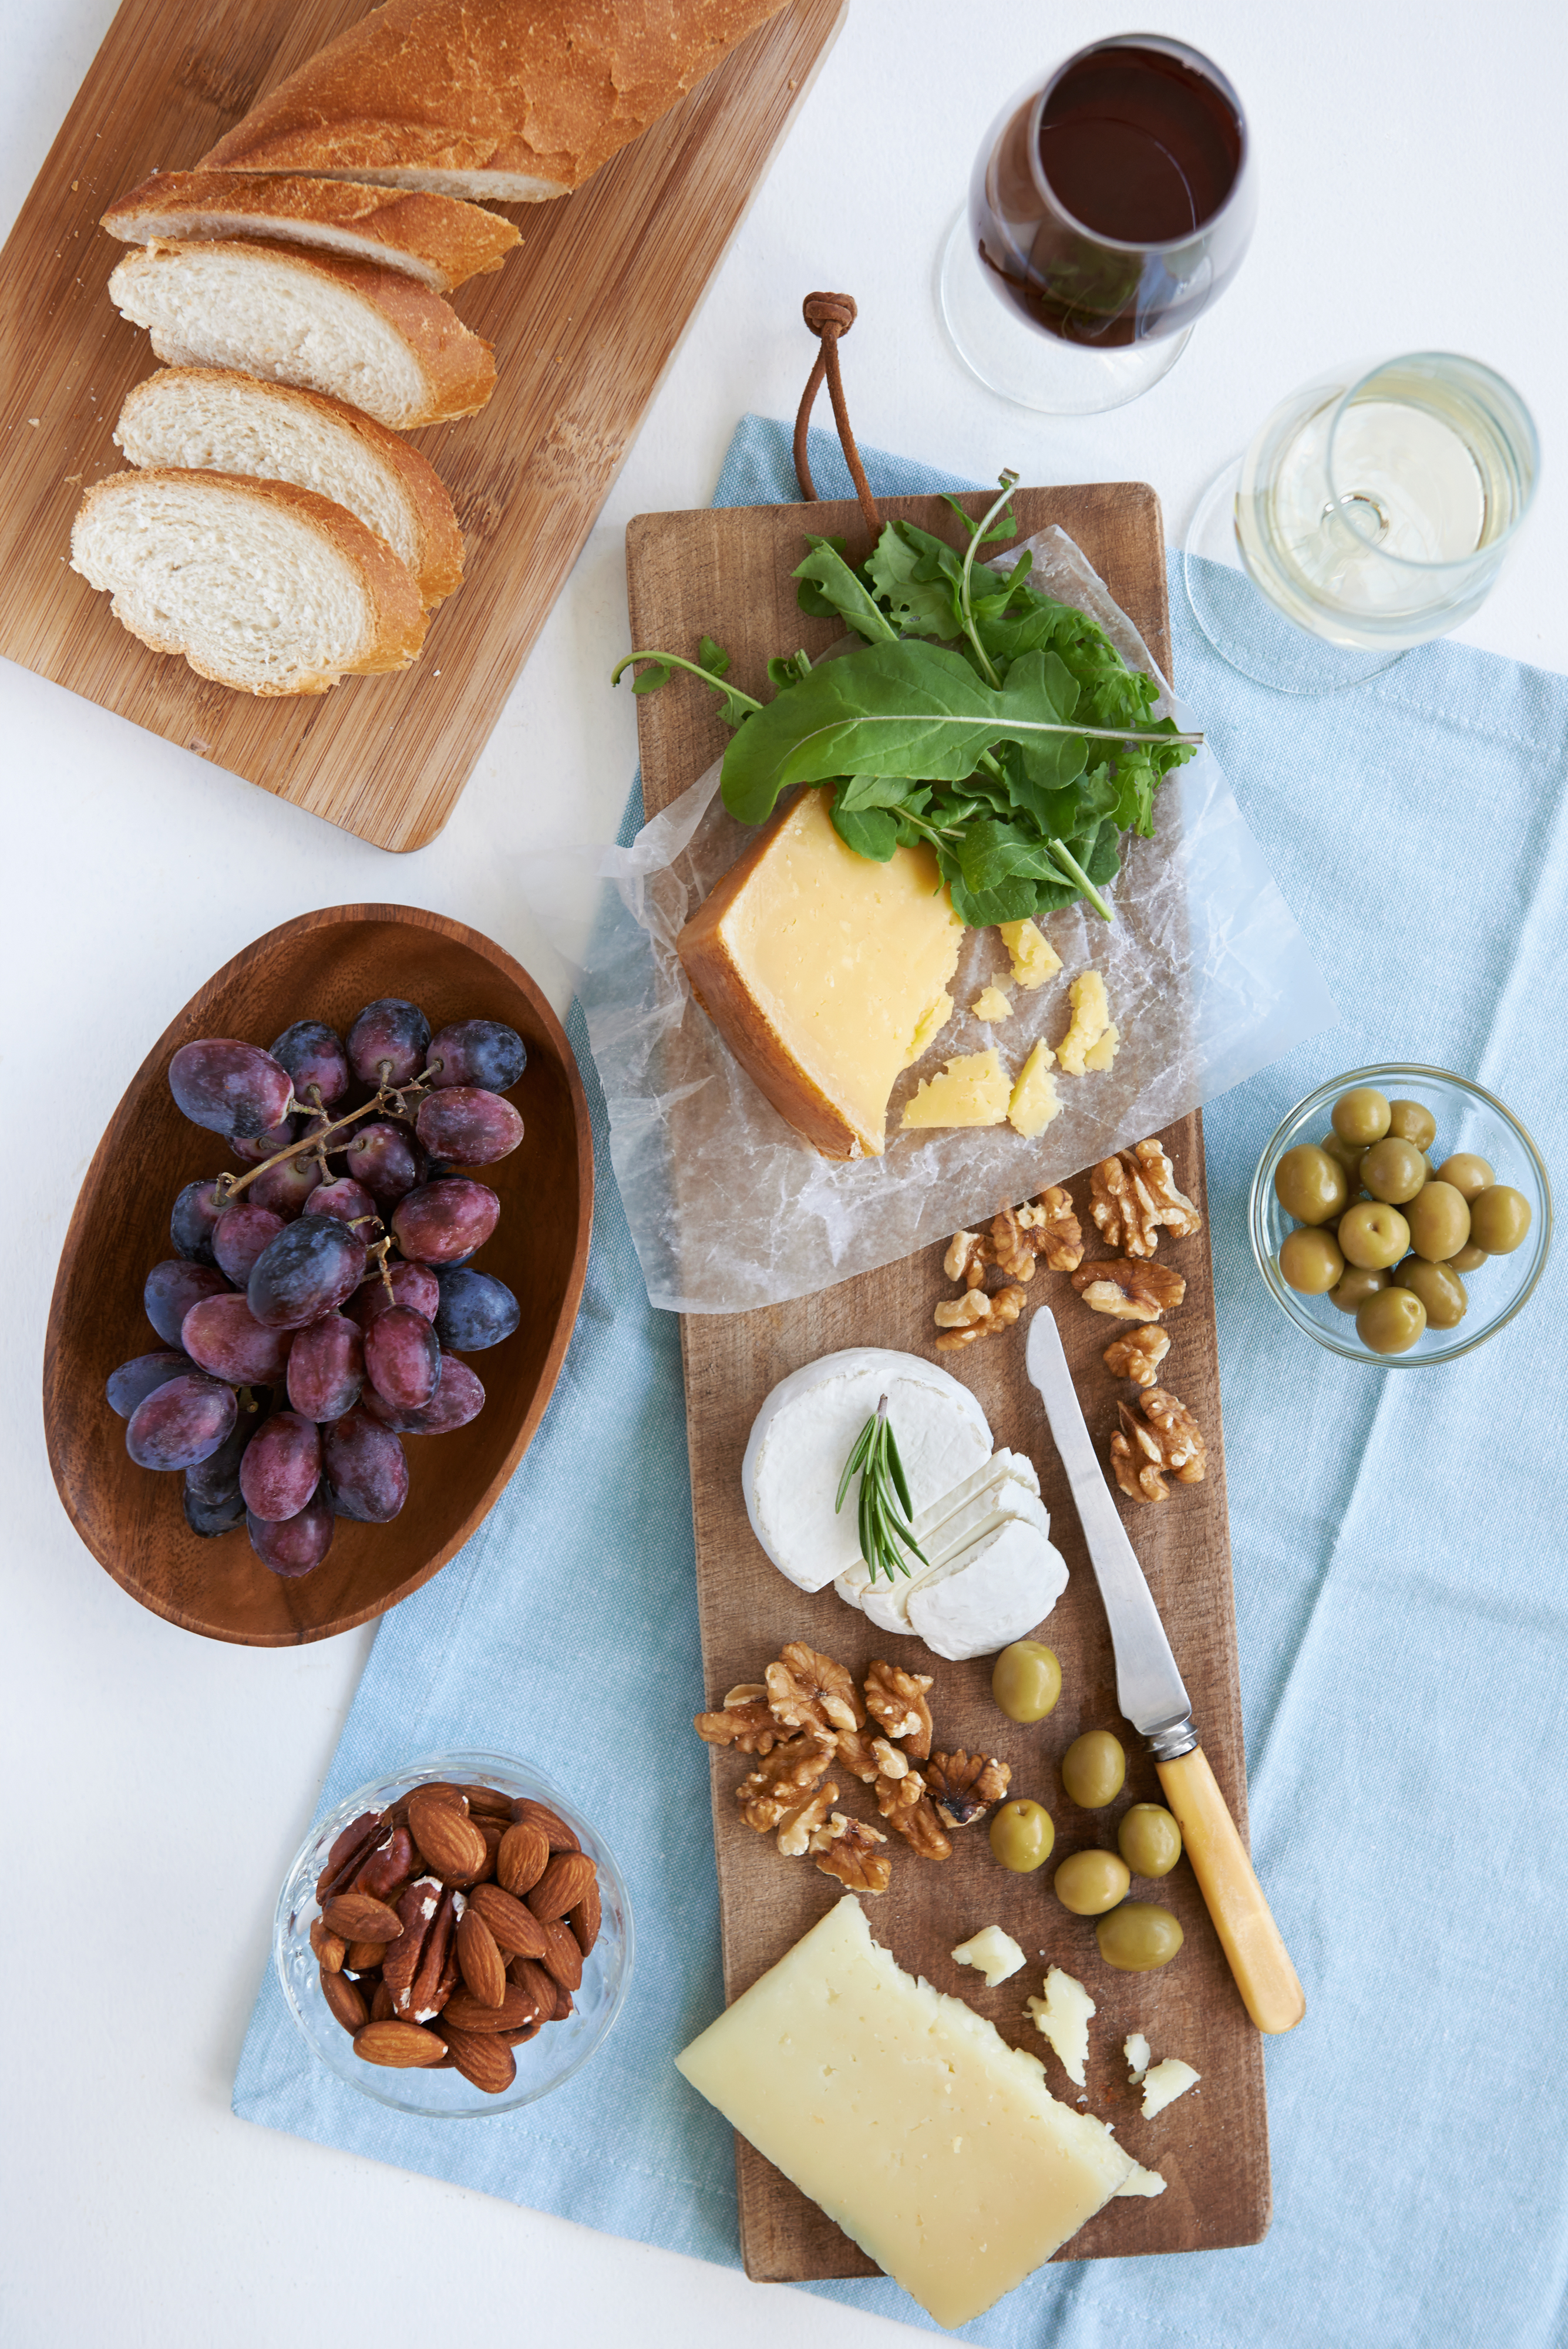 Cheese platter starter appetiser pre dinner snack, assortment of different cheeses, nuts, olives and grapes served with wine